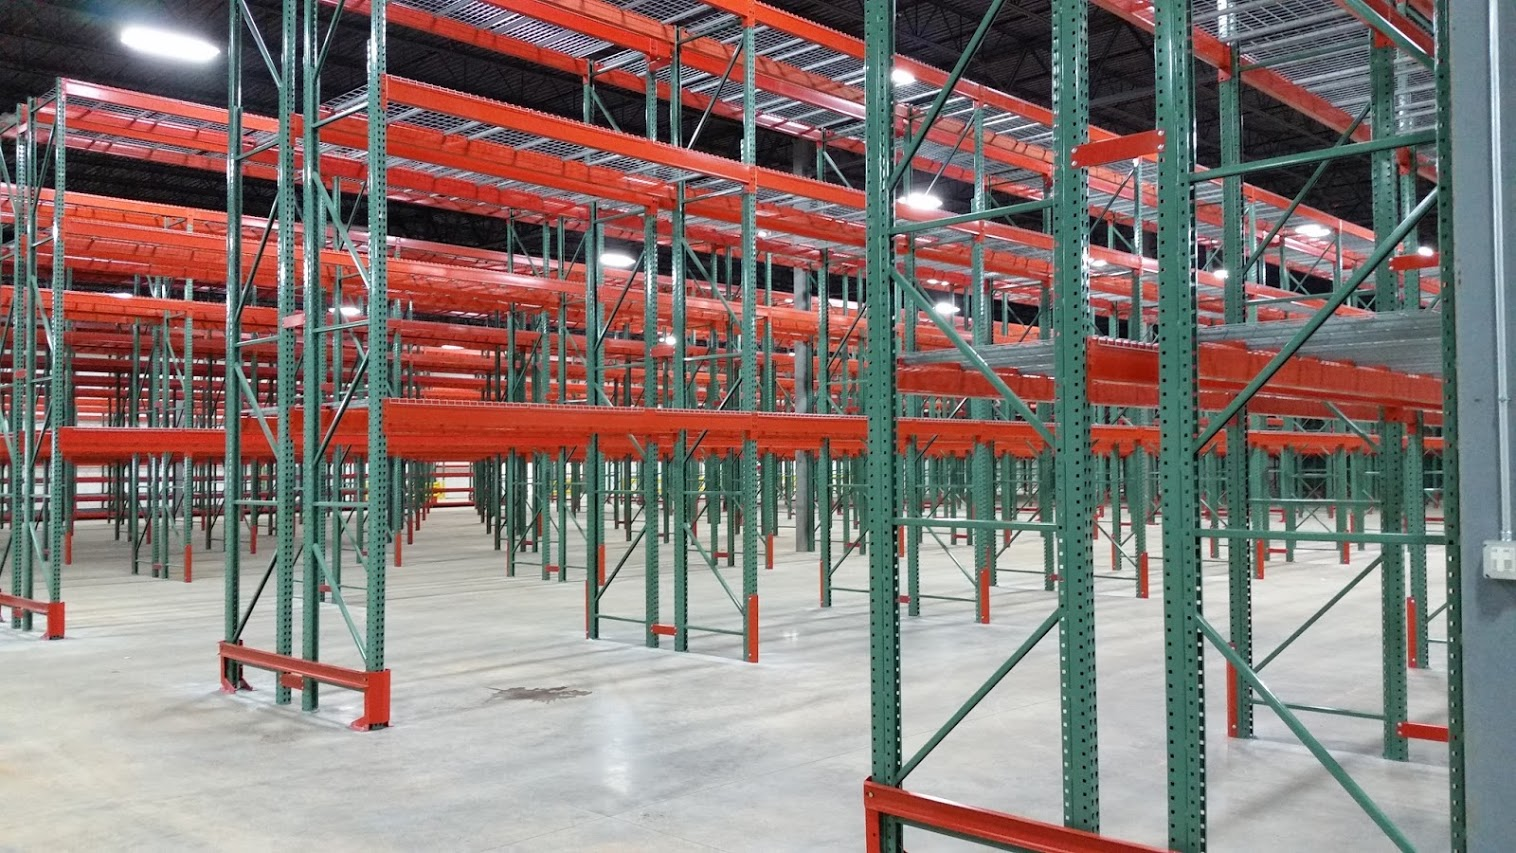 TEARDROP PALLET RACK INSTALL BACK TO BACK ROWS-ANGLE-VIEW.jpg